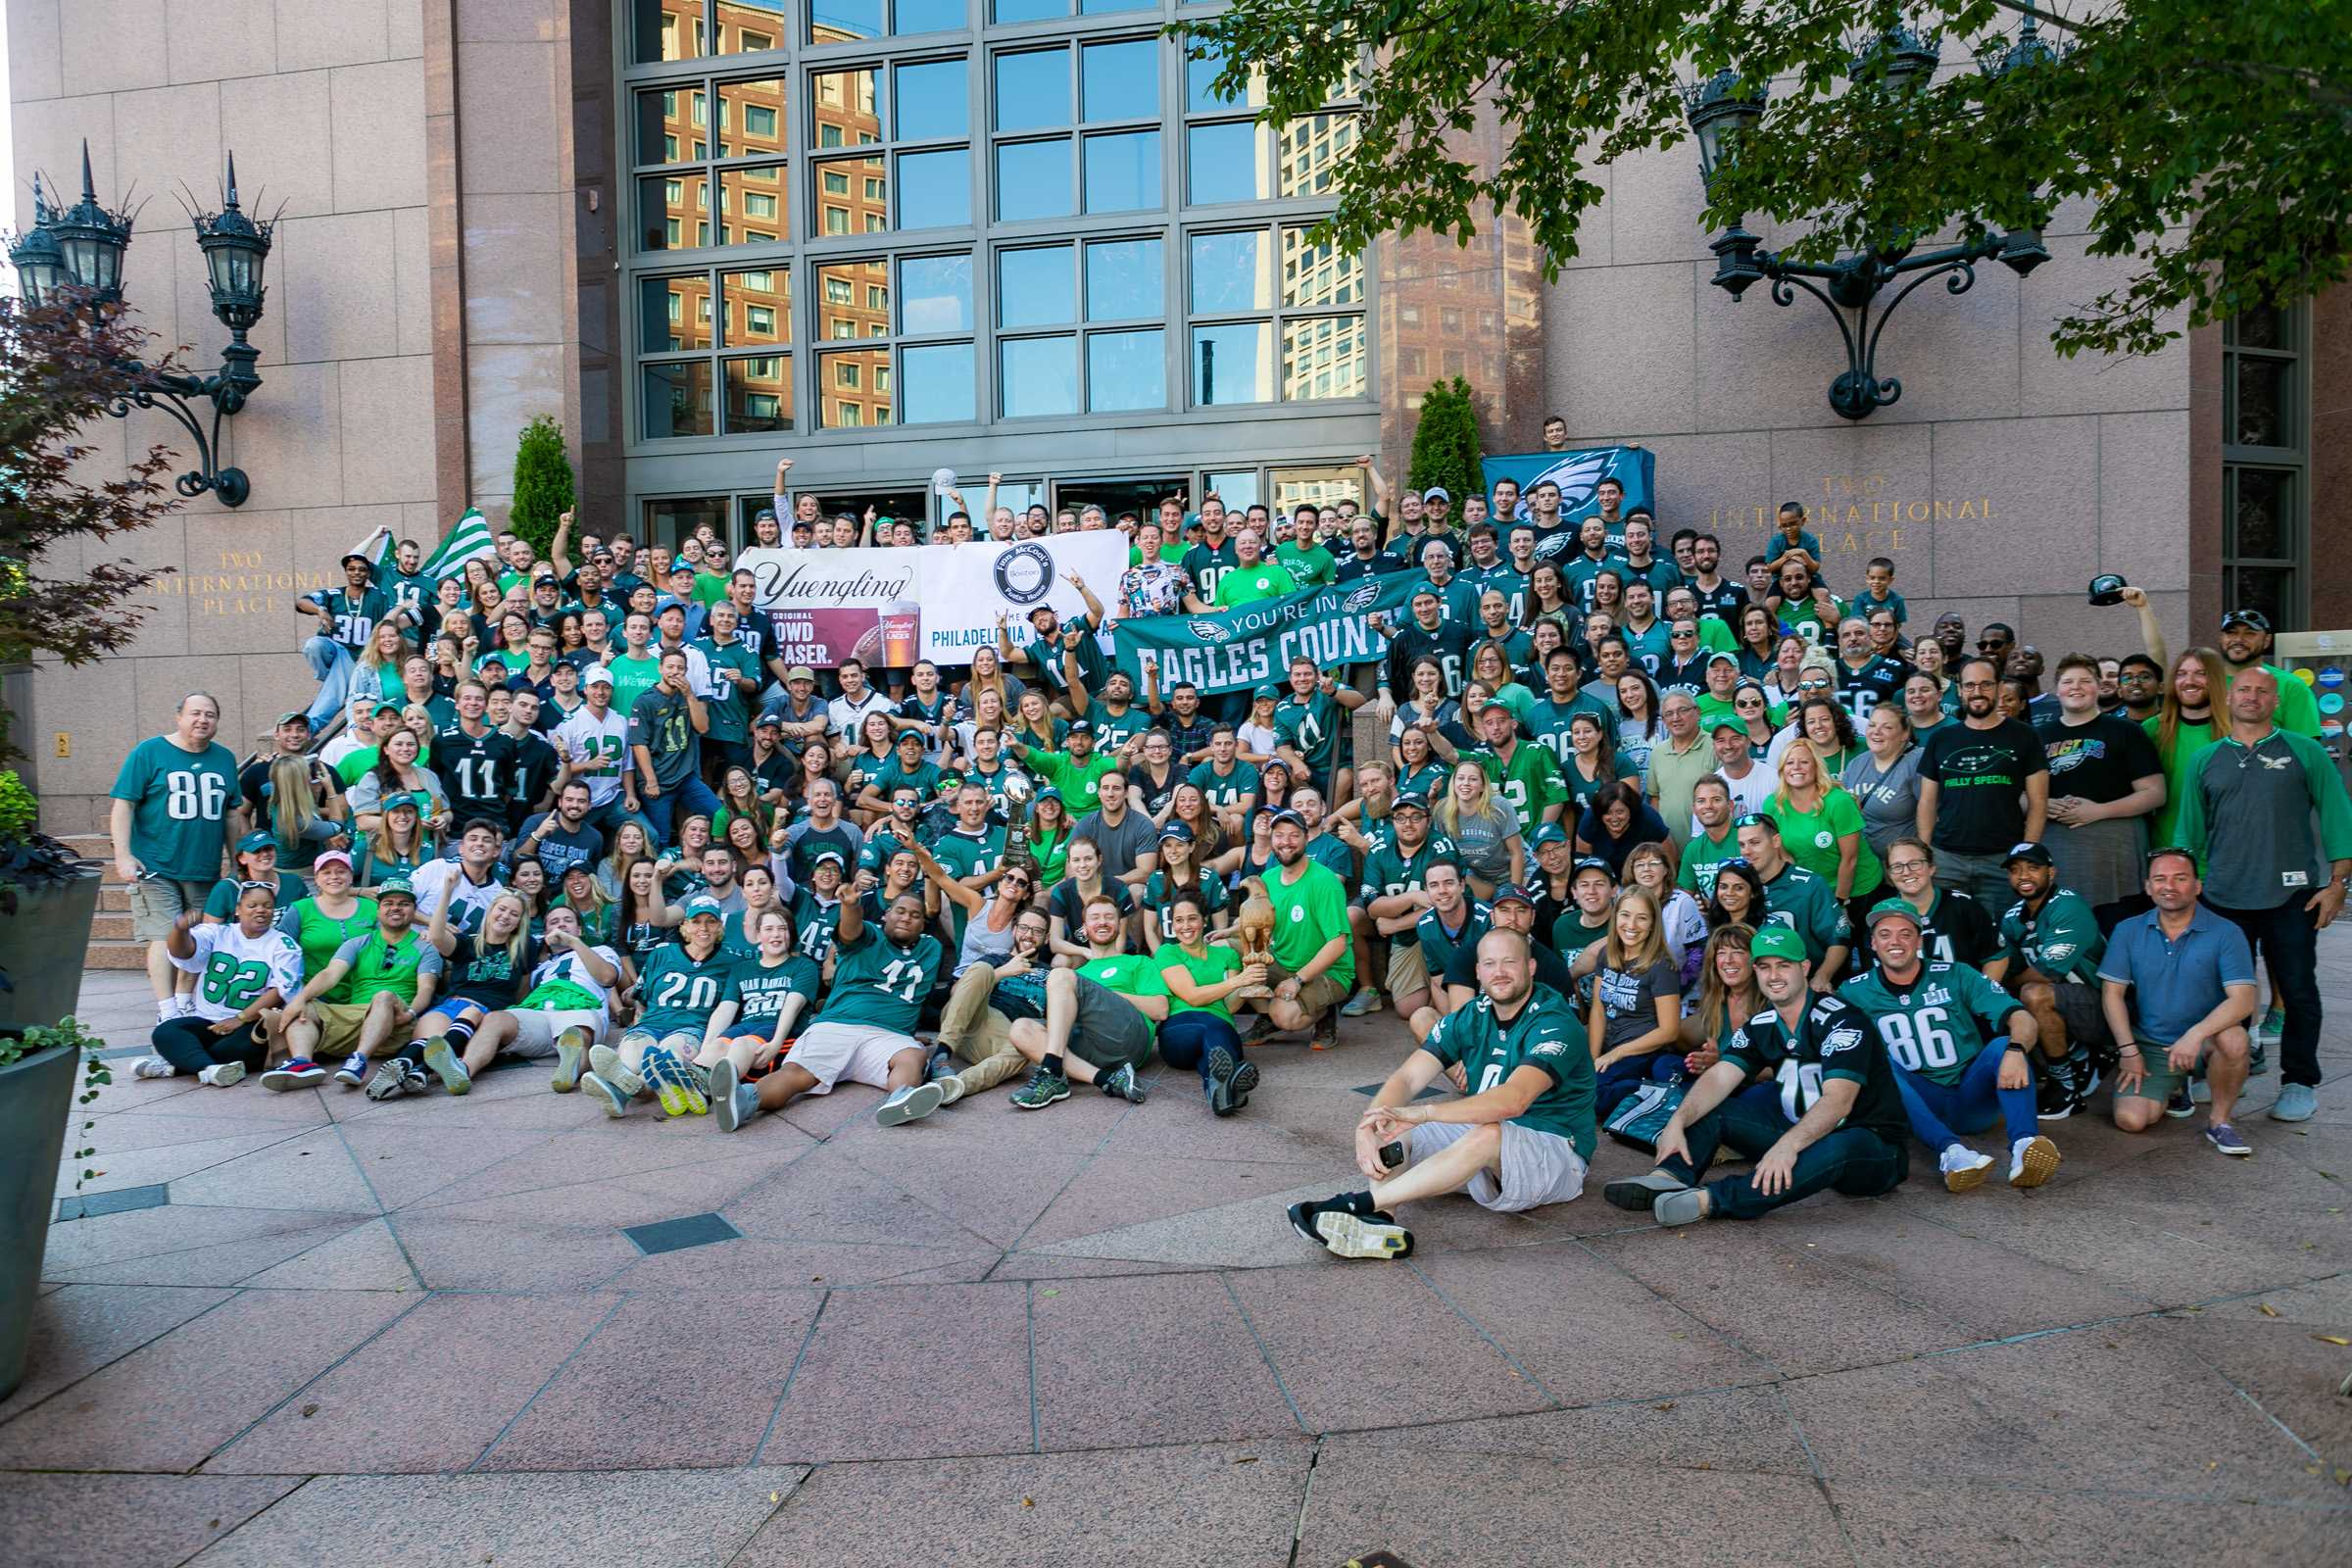 The Philadelphia Eagles Fans of Boston Class Photo from 2018, taken outside of their current home bar, Finn McCool's Public House. Courtesy of Philadelphia Eagles Fans of Boston website.